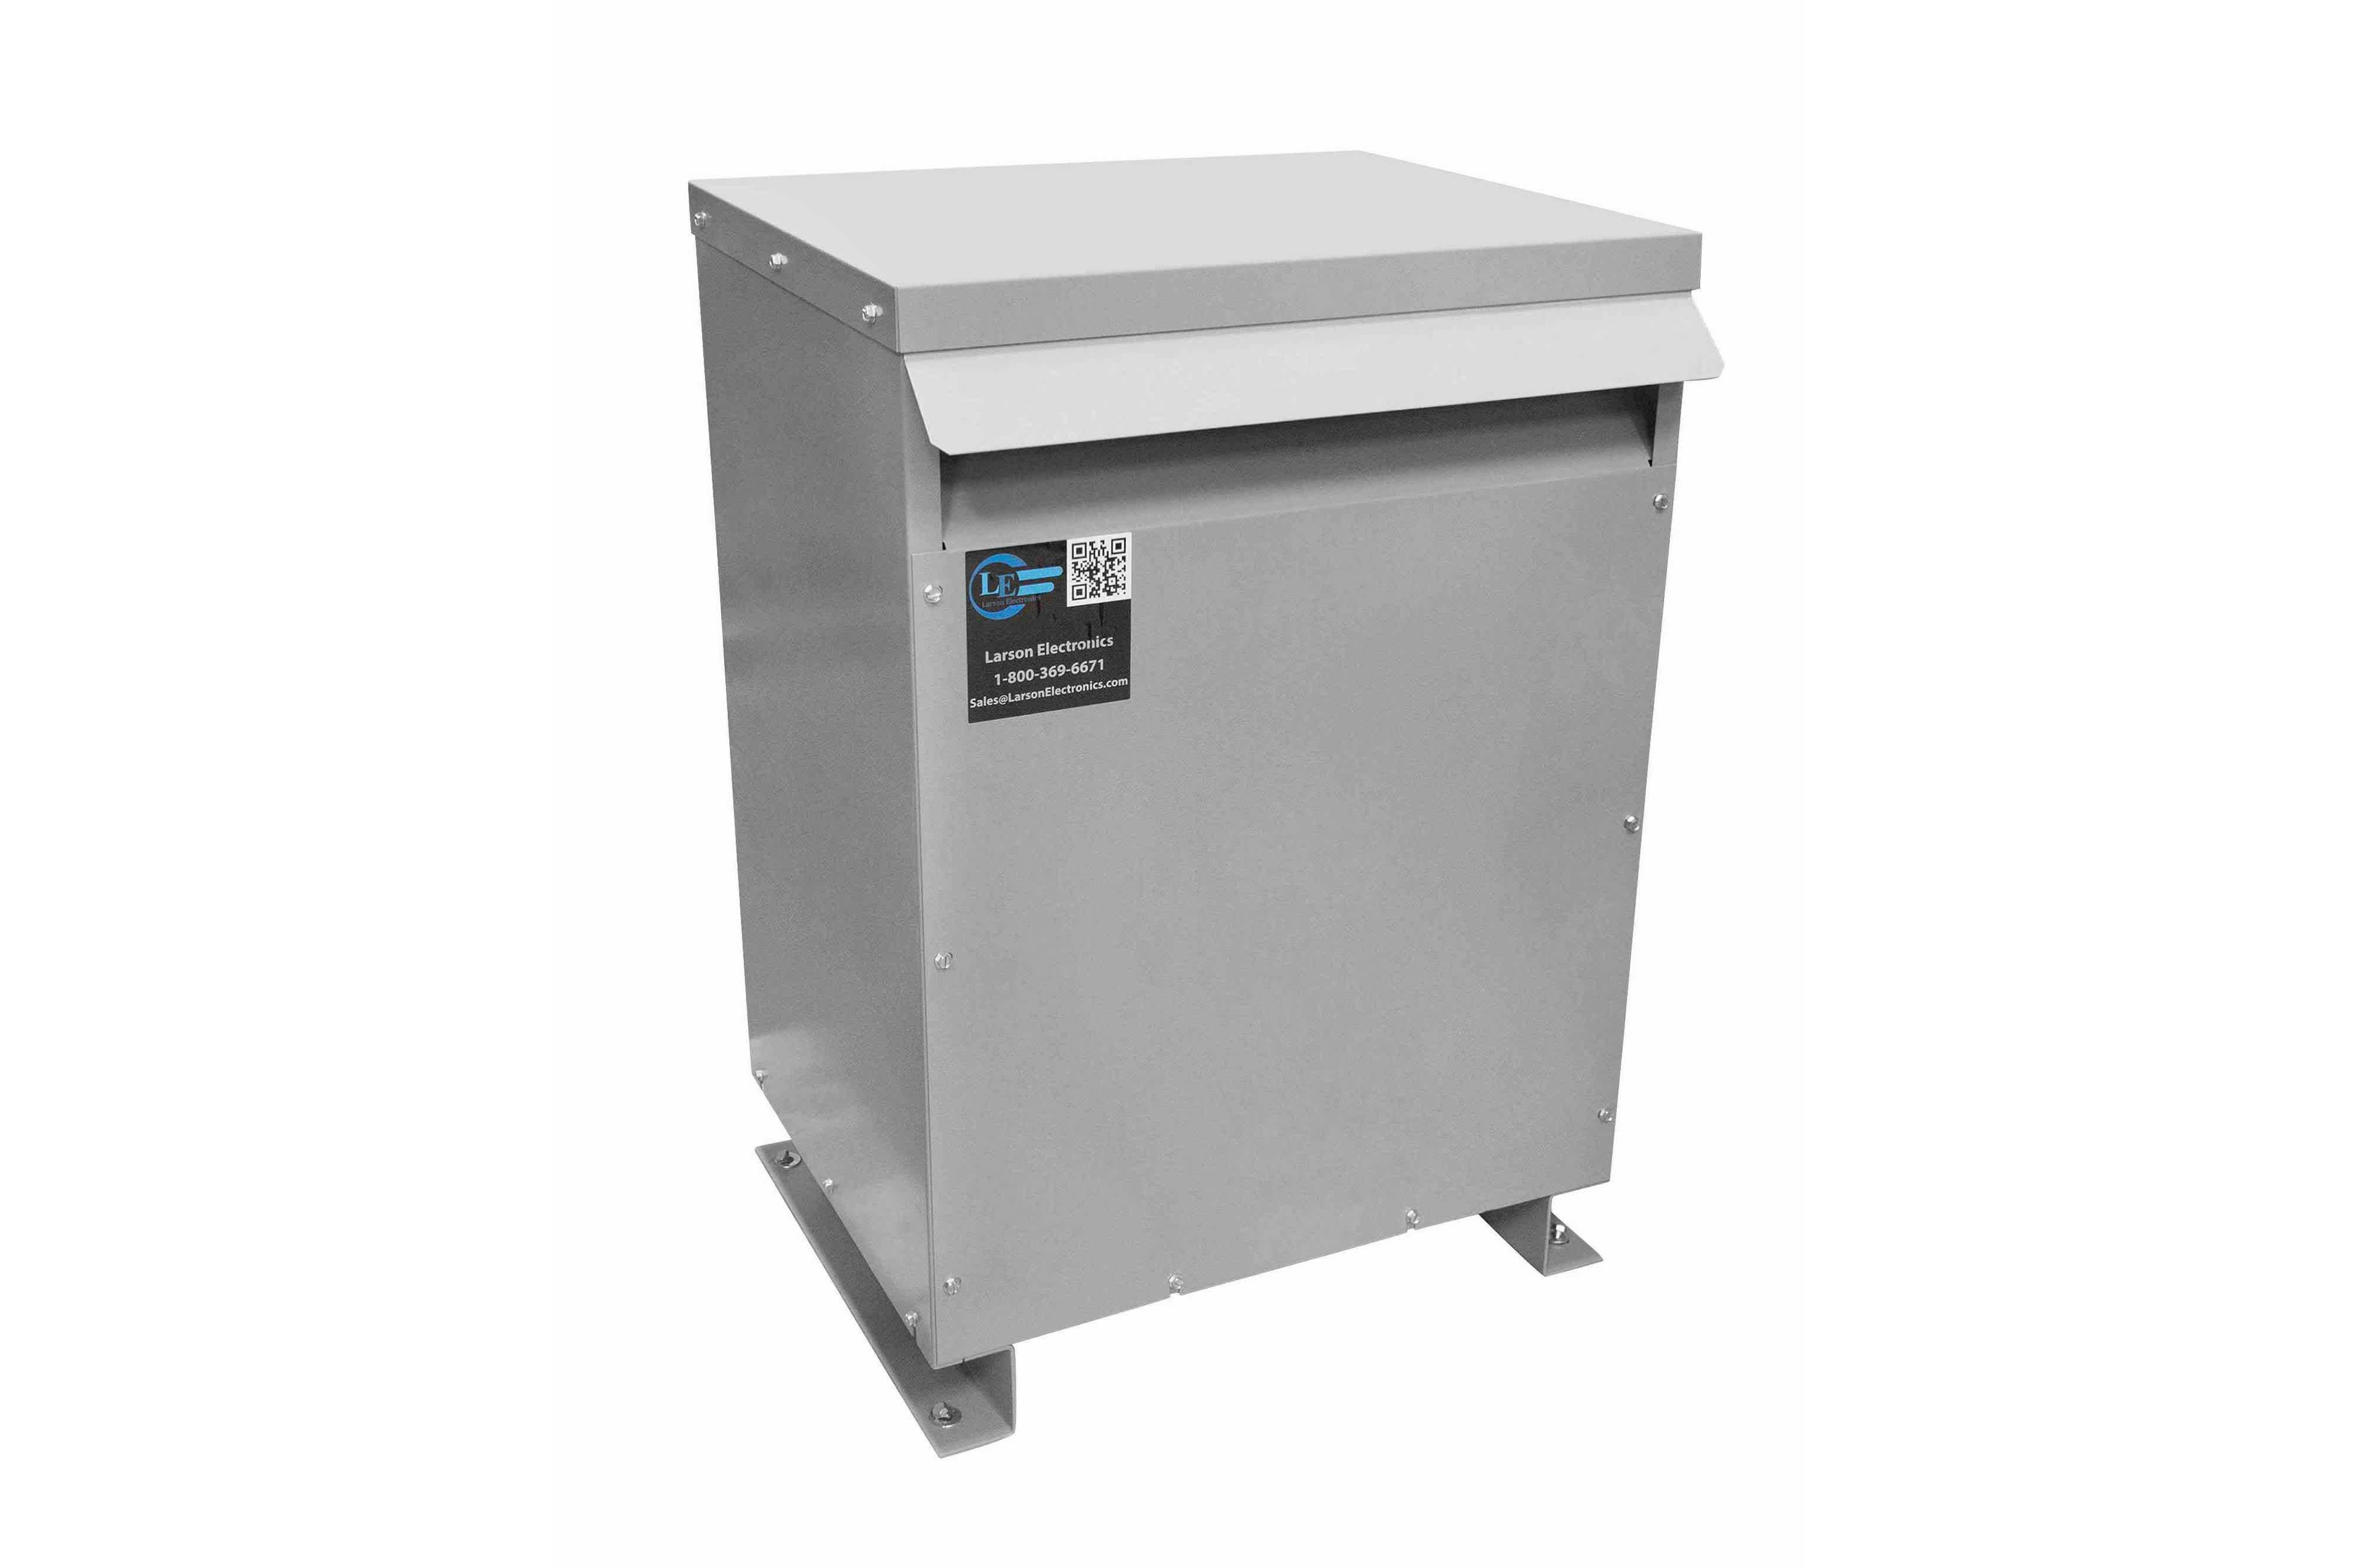 125 kVA 3PH Isolation Transformer, 220V Wye Primary, 480V Delta Secondary, N3R, Ventilated, 60 Hz